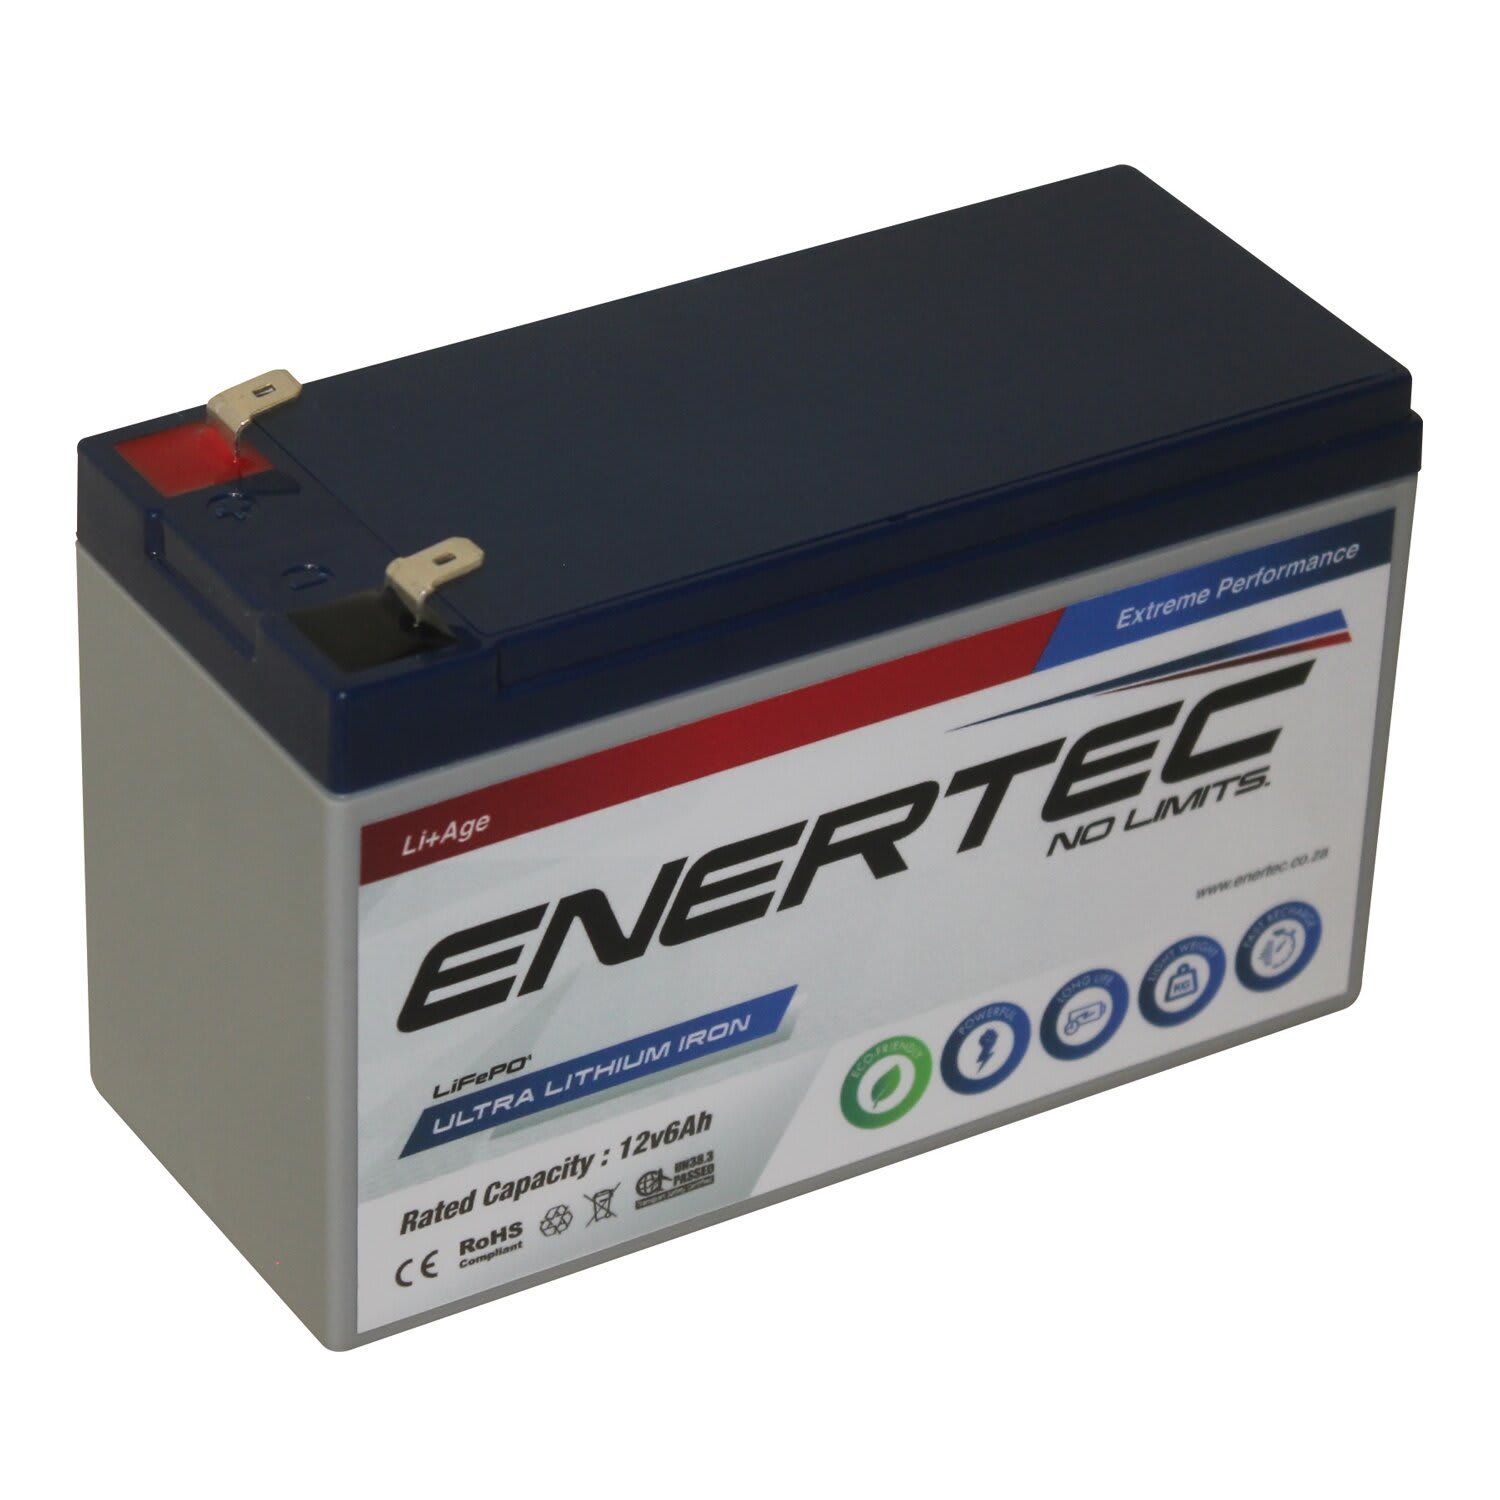 12 Volt Gate Motor Battery. For sale at Farmability South Afruca